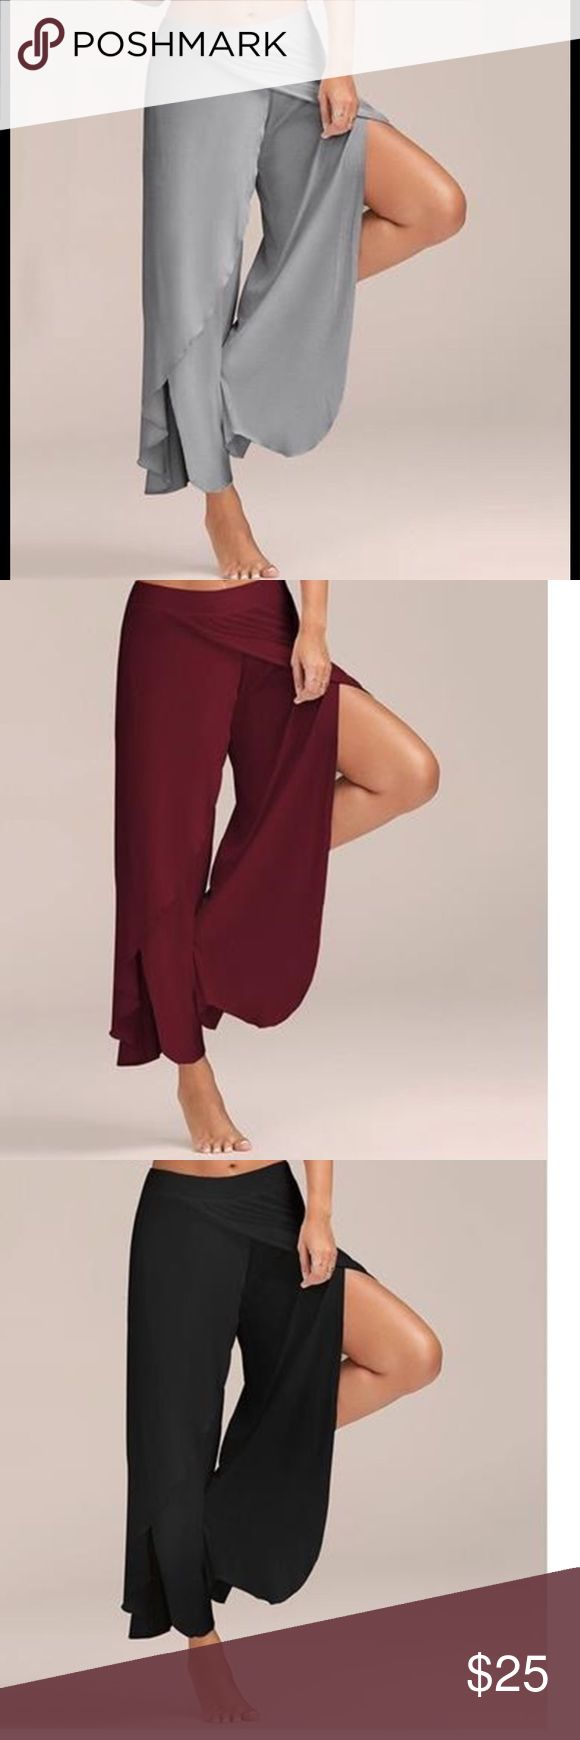 """Loose Wide Leg Fashionable Lightweight Pants Burgundy Lightweight fashionable loose fit and feel great with all the movement. Can be worn high waisted or low around hips. Chiffon made out of Polyester/Cotton/Spandex material great for casual wear or dress up with heals. Measurements approximately Waist flat 14 1/2"""", will fit 28"""" to 34"""" Inset 13"""" Inseam 31"""", Length 44"""". Slit starts at Hemline but there is fabric overlap so no exposure. Great to wear as a skirt for those that don't skirts…"""